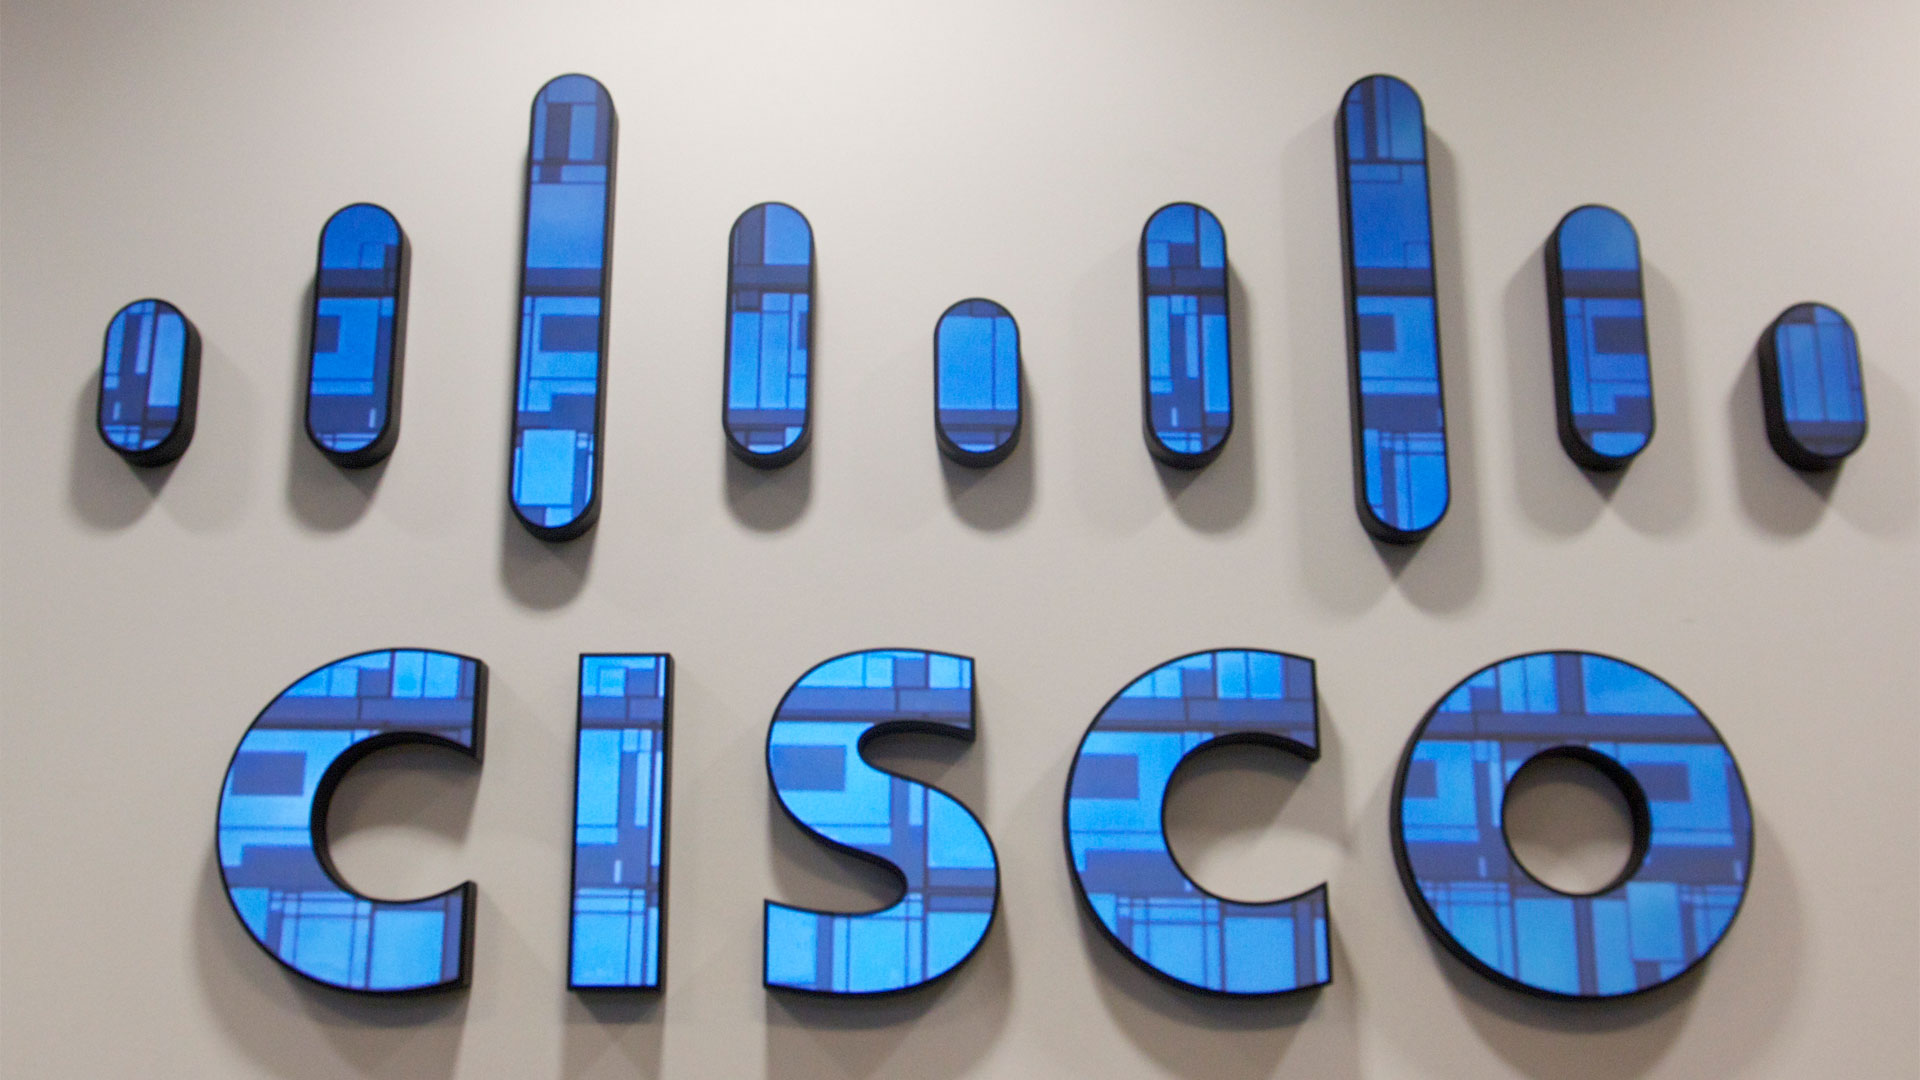 Cisco-logo-photo